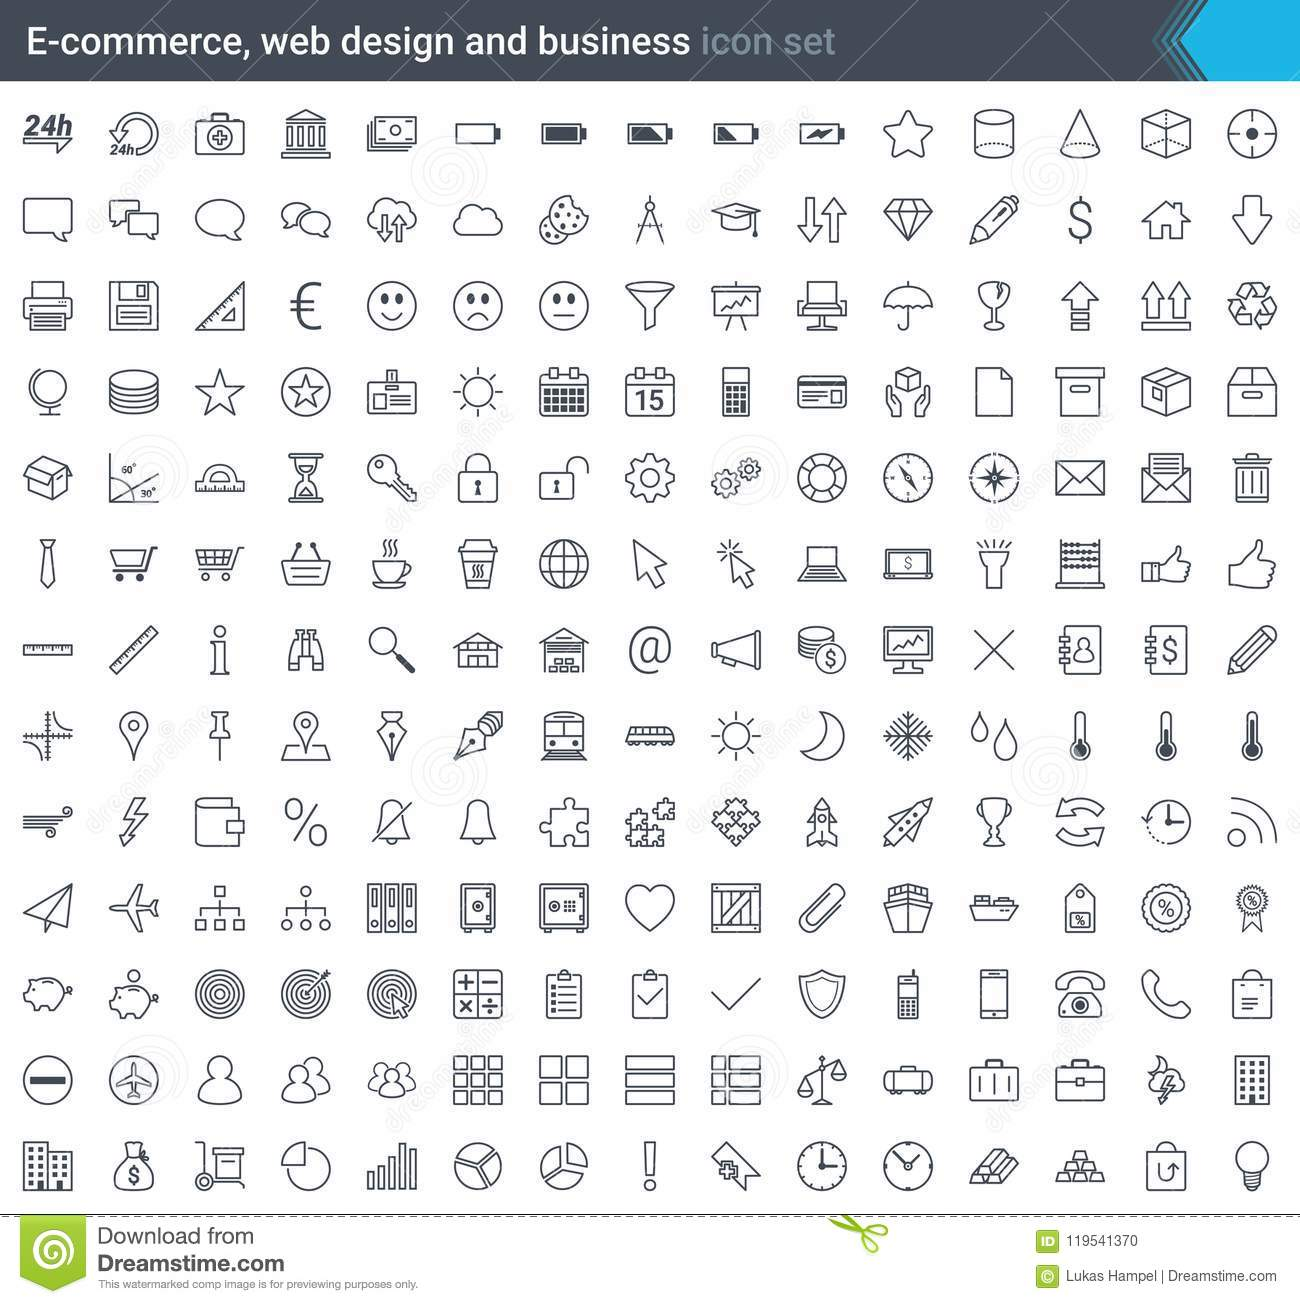 Business, e-commerce, web and shopping icons set in modern style isolated on white background. Stroke icons.